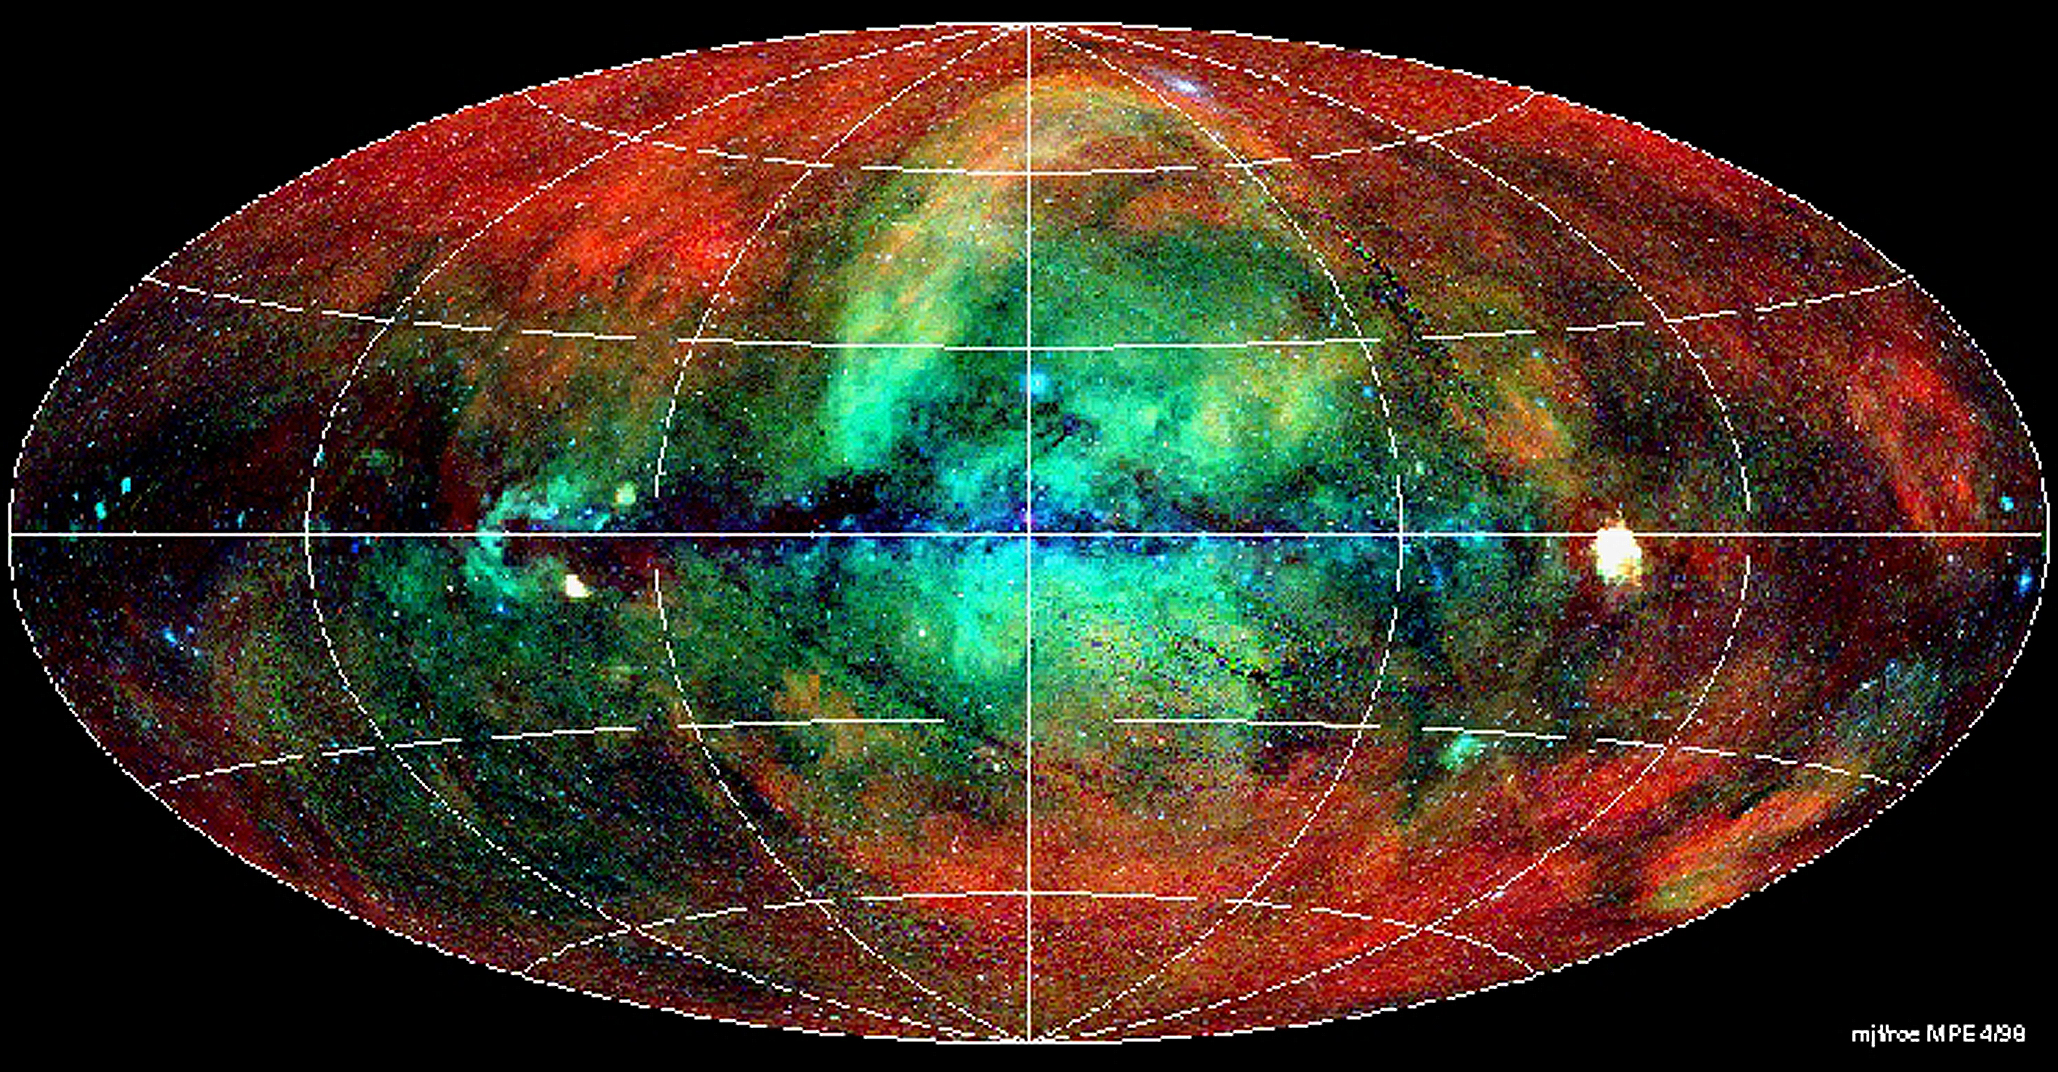 ROSAT Images the Entire Sky in X-rays